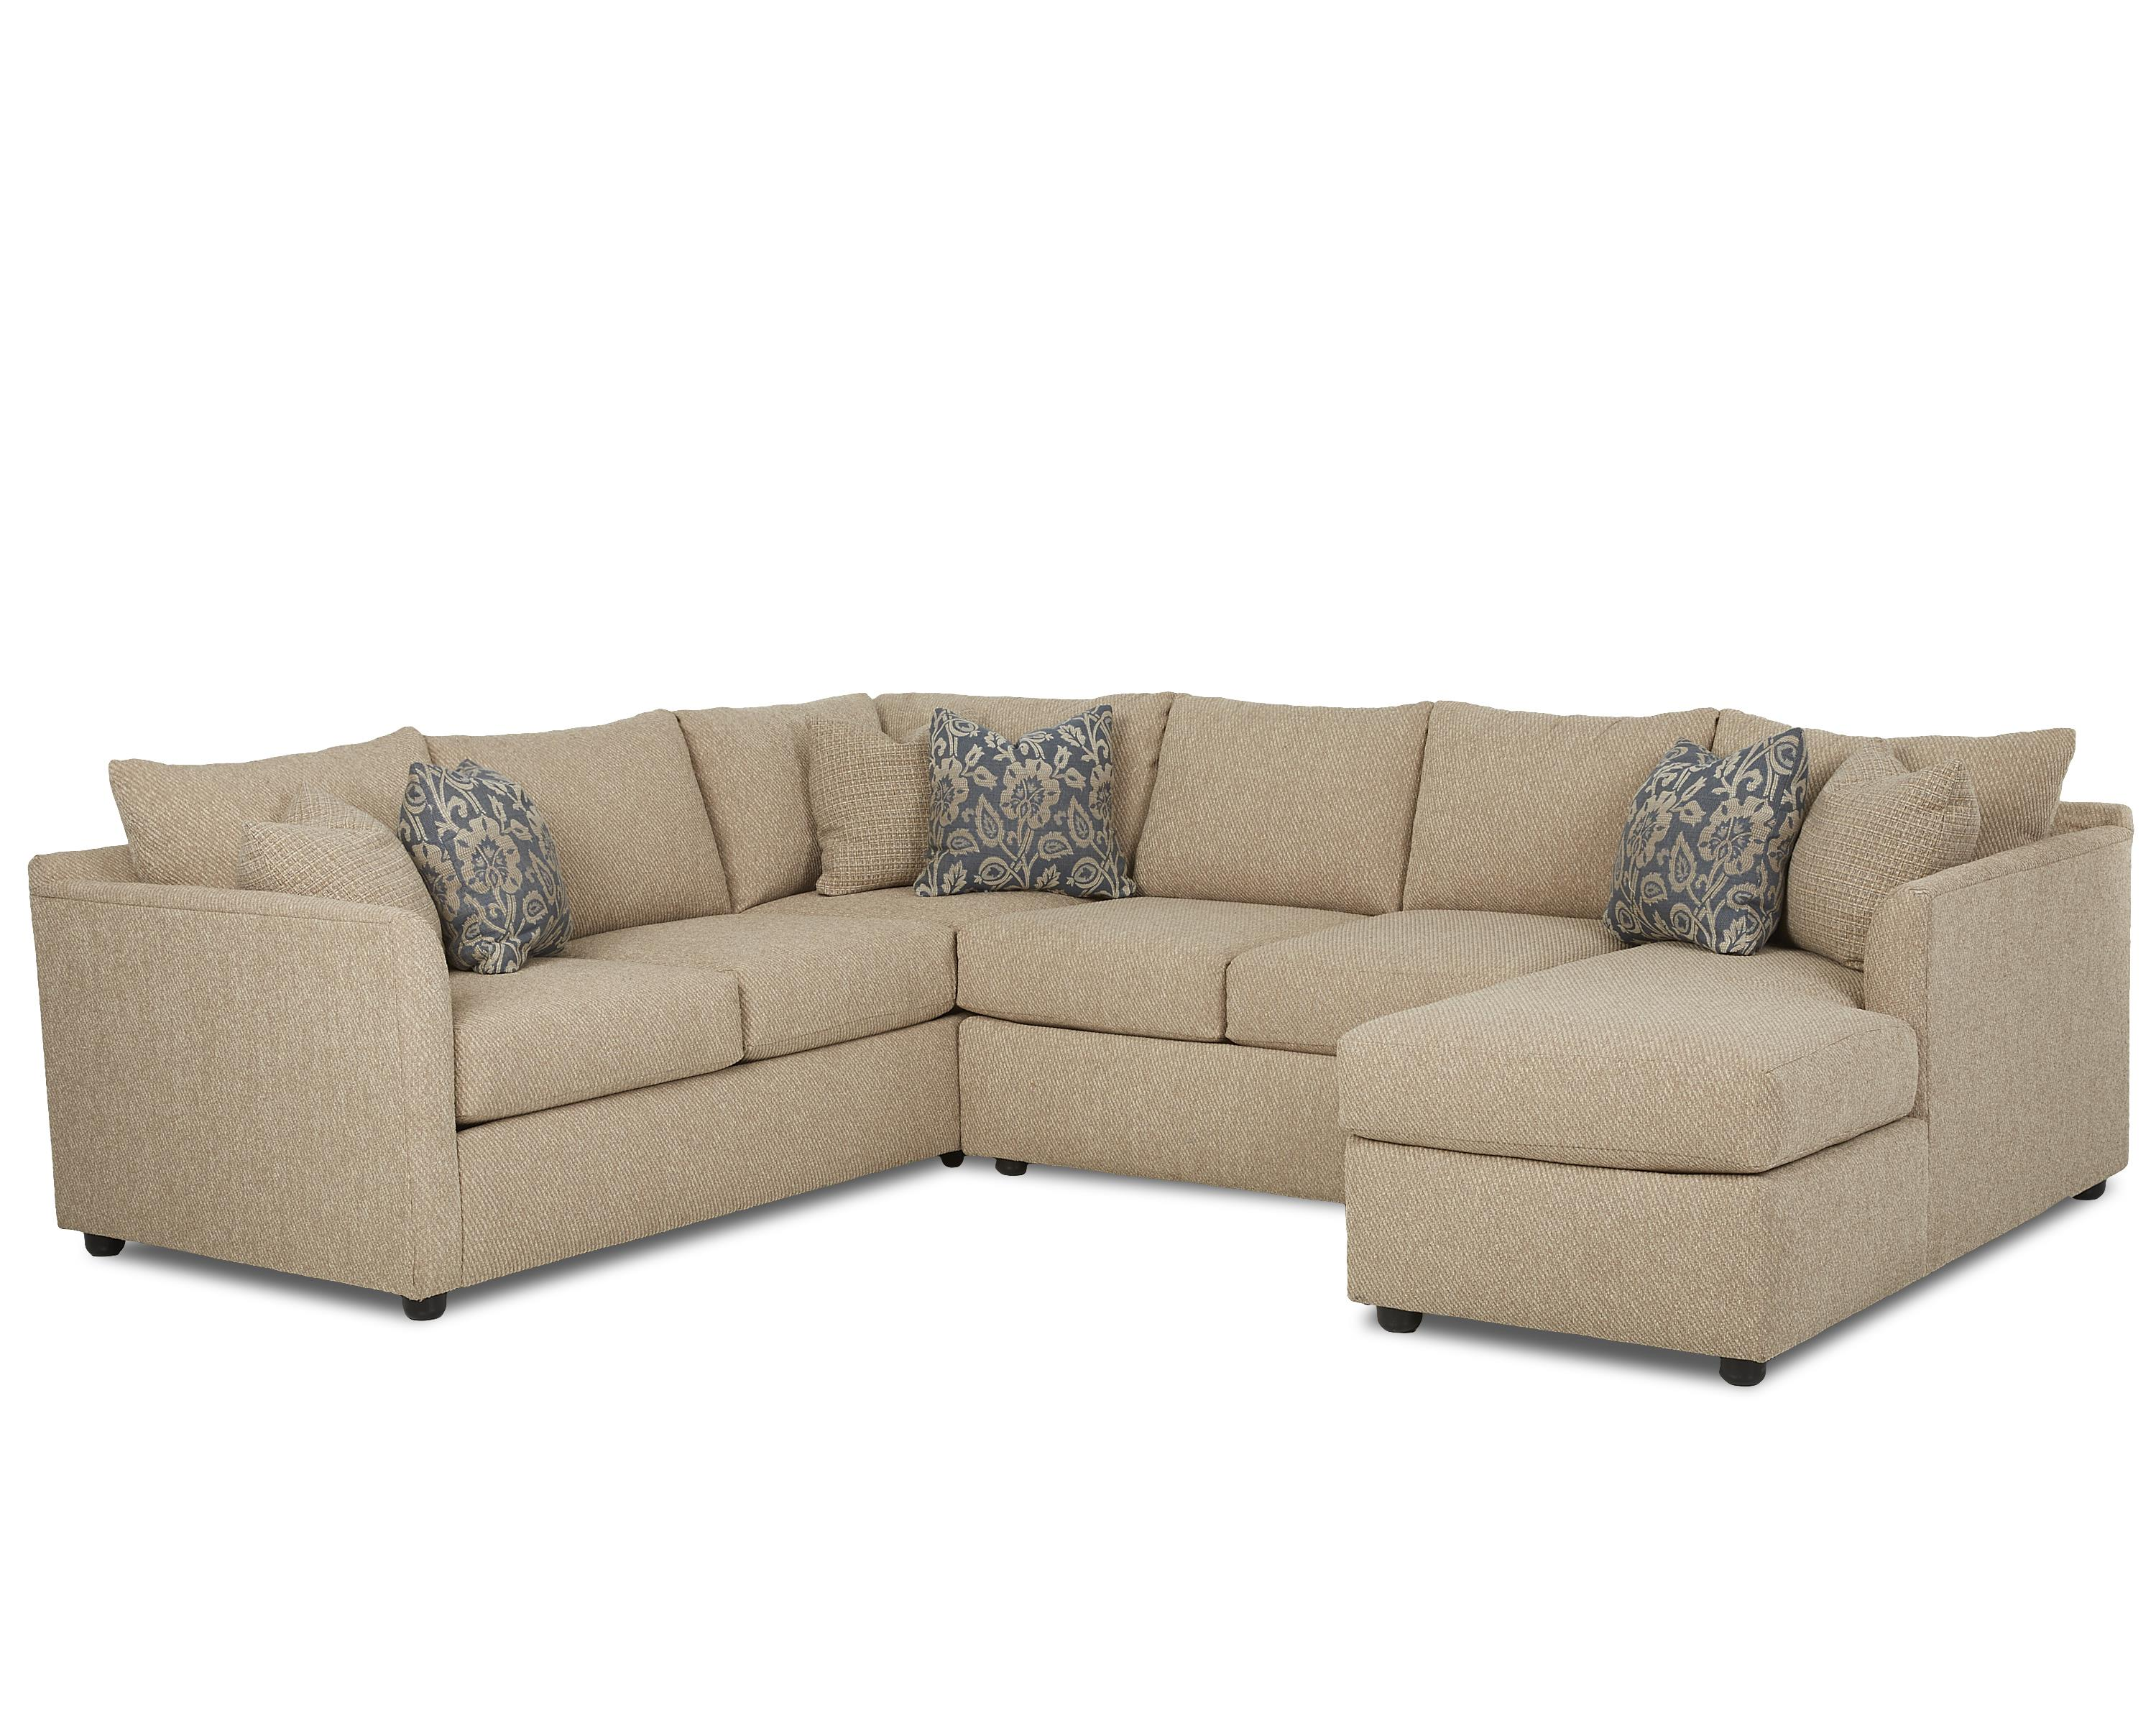 Transitional Sectional Sofa with Chaise by Trisha Yearwood Home